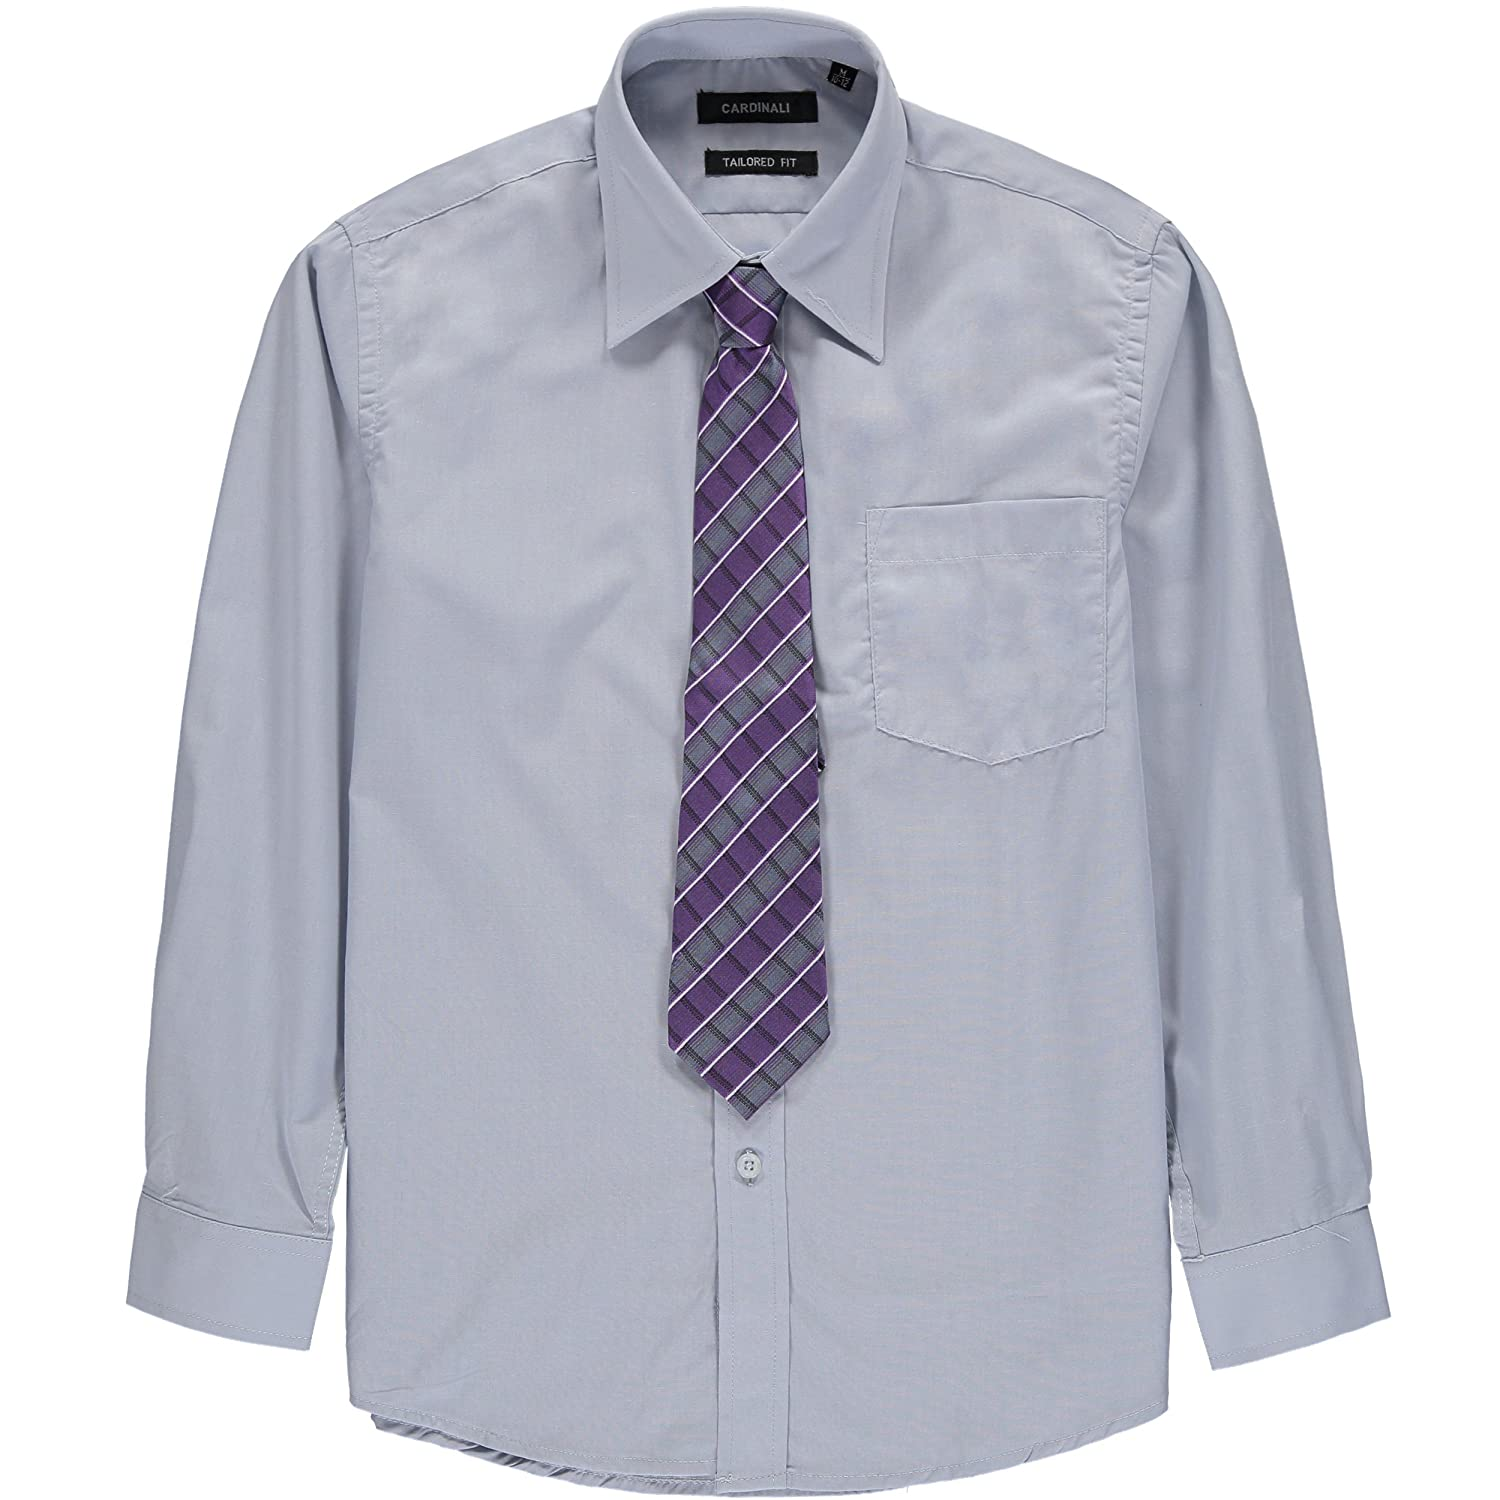 Cardinali Boys Size 8-20 Tailored Fit Dress Shirt with Assorted Tie B115